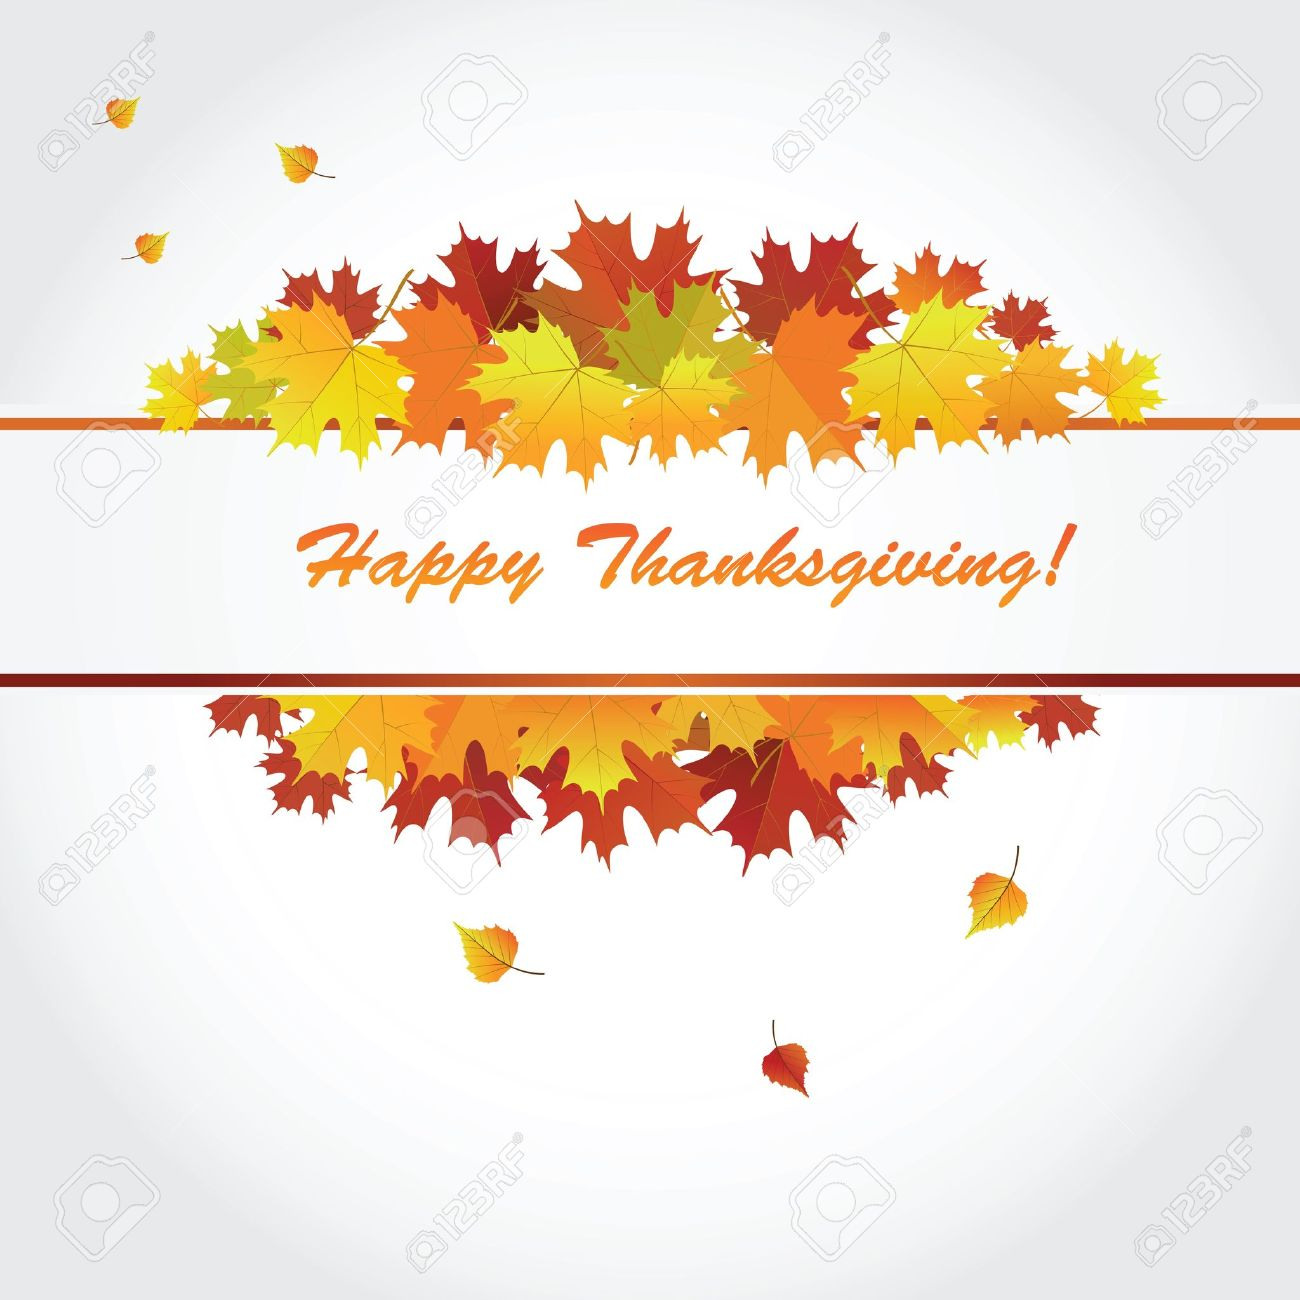 Banner For The Thanksgiving Holiday Vector Royalty Free Cliparts ...